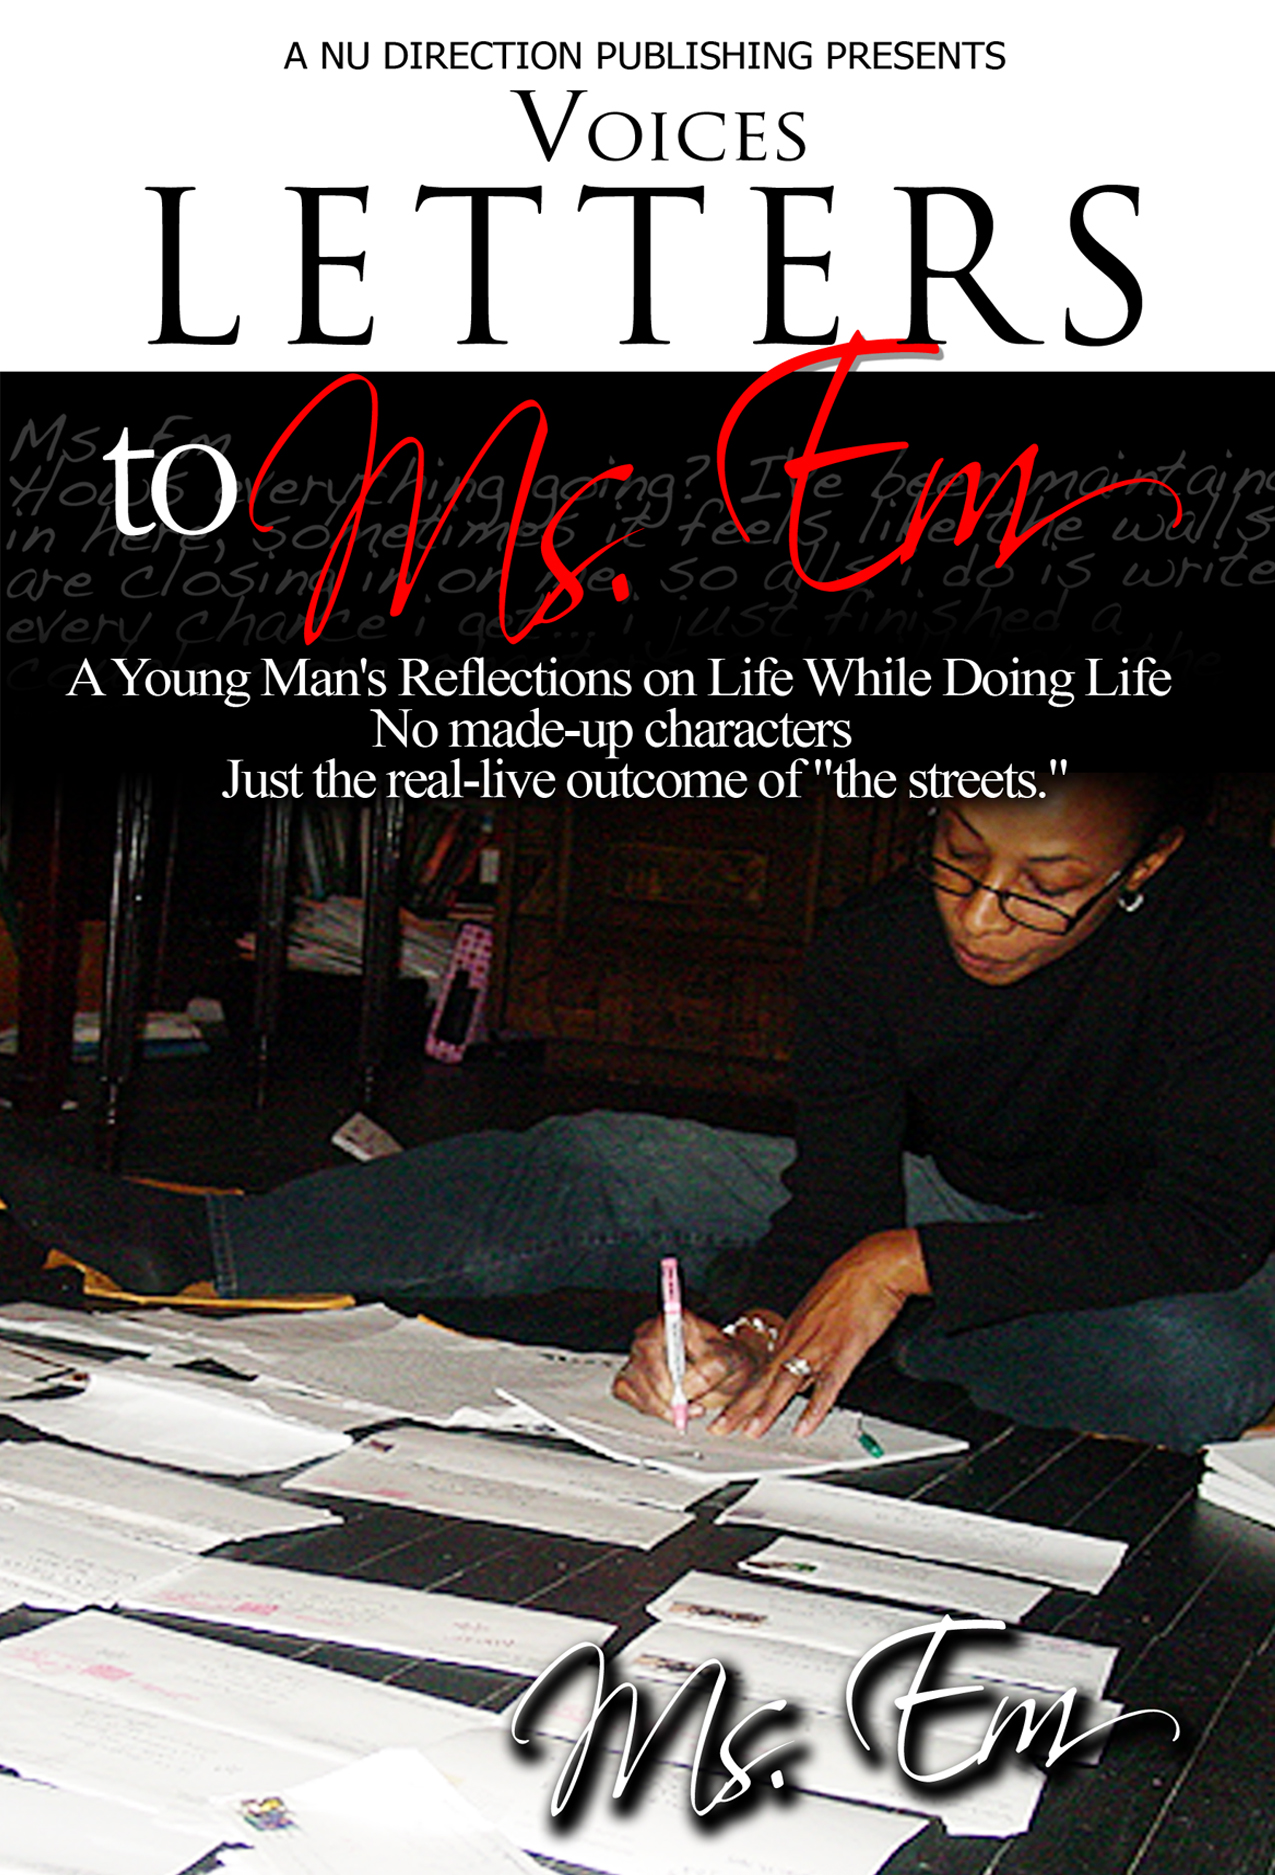 letters-to-ms-em